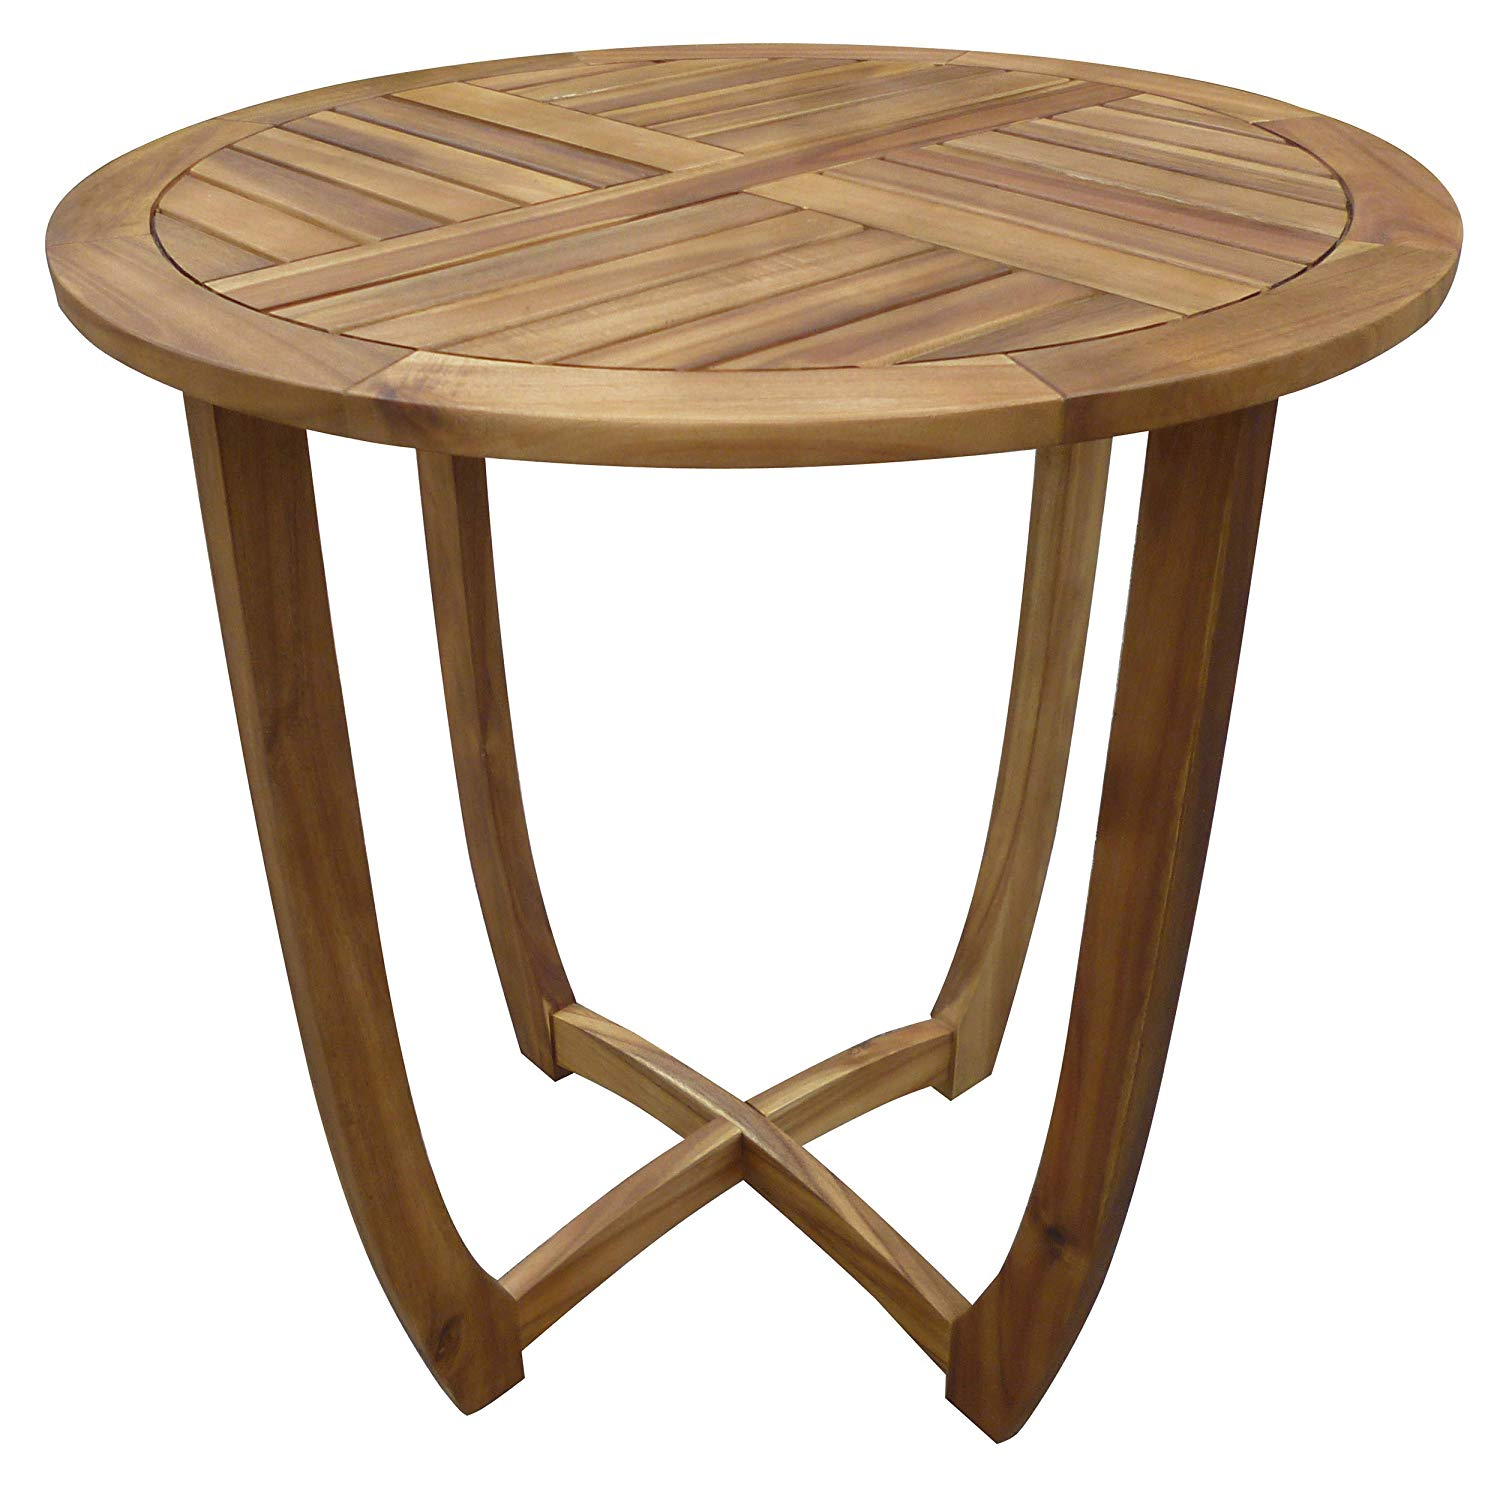 great furniture navarro round wood outdoor accent table perfect for patio with teak finish garden entry small spaces bottle wine rack classic design natural leather storage